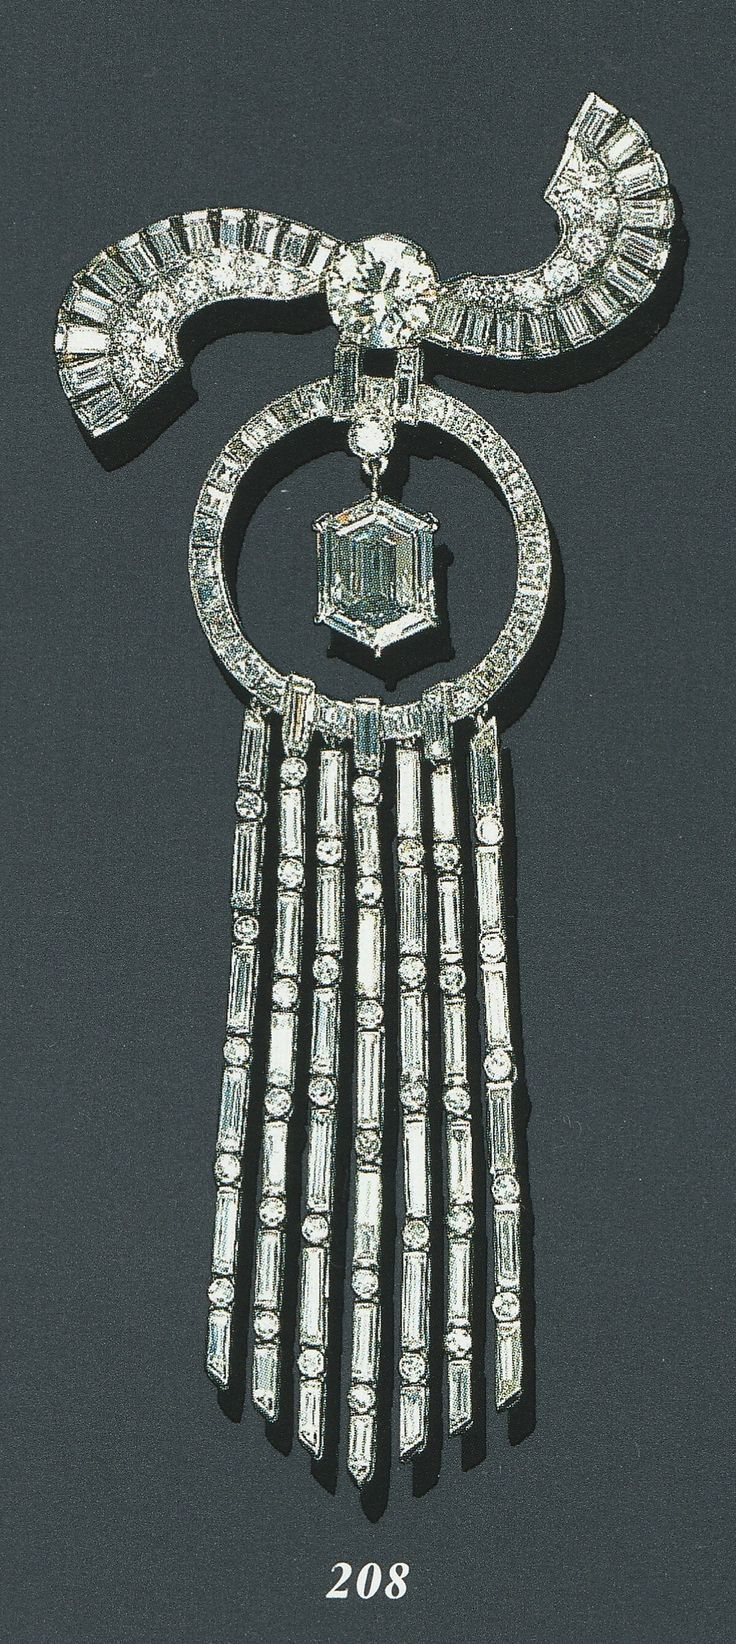 AN ART DECO DIAMOND PENDANT BROOCH, CIRCA 1930. Centring upon a hexagonal-cut diamond, suspended by a diamond collet from a calibré-cut diamond independant frame, enhanced by a pavé-set, baguette and circular-cut diamond scroll motif surmount and a seven-strand baguette and circular-cut diamond tassel, mounted in platinum.